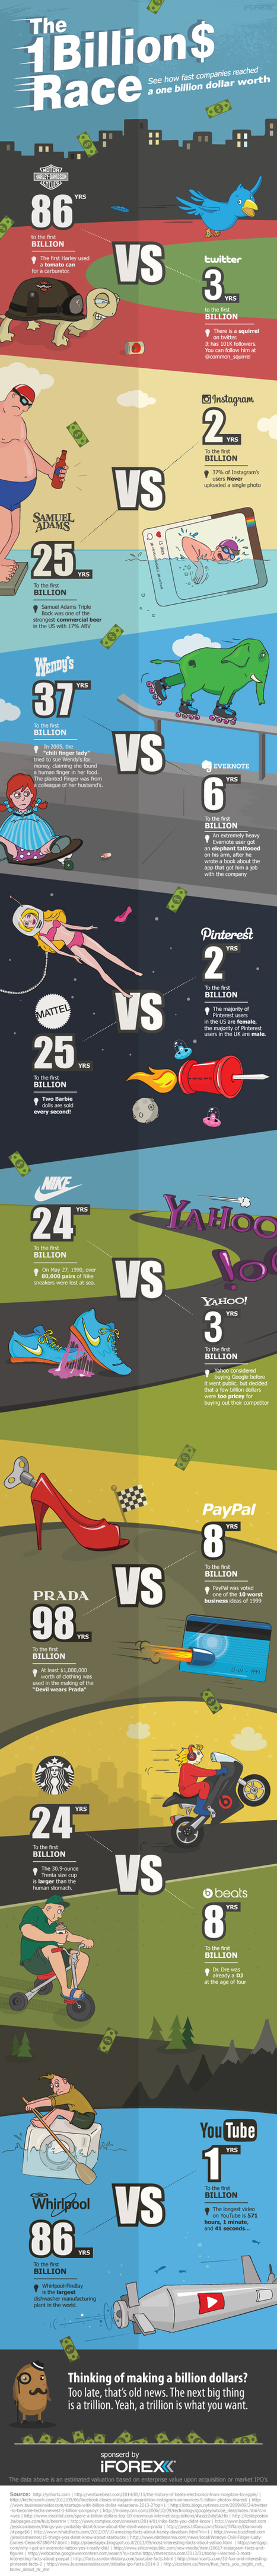 The One Billion Dollar Race - iFOREX Blog | Infographic | Scoop.it